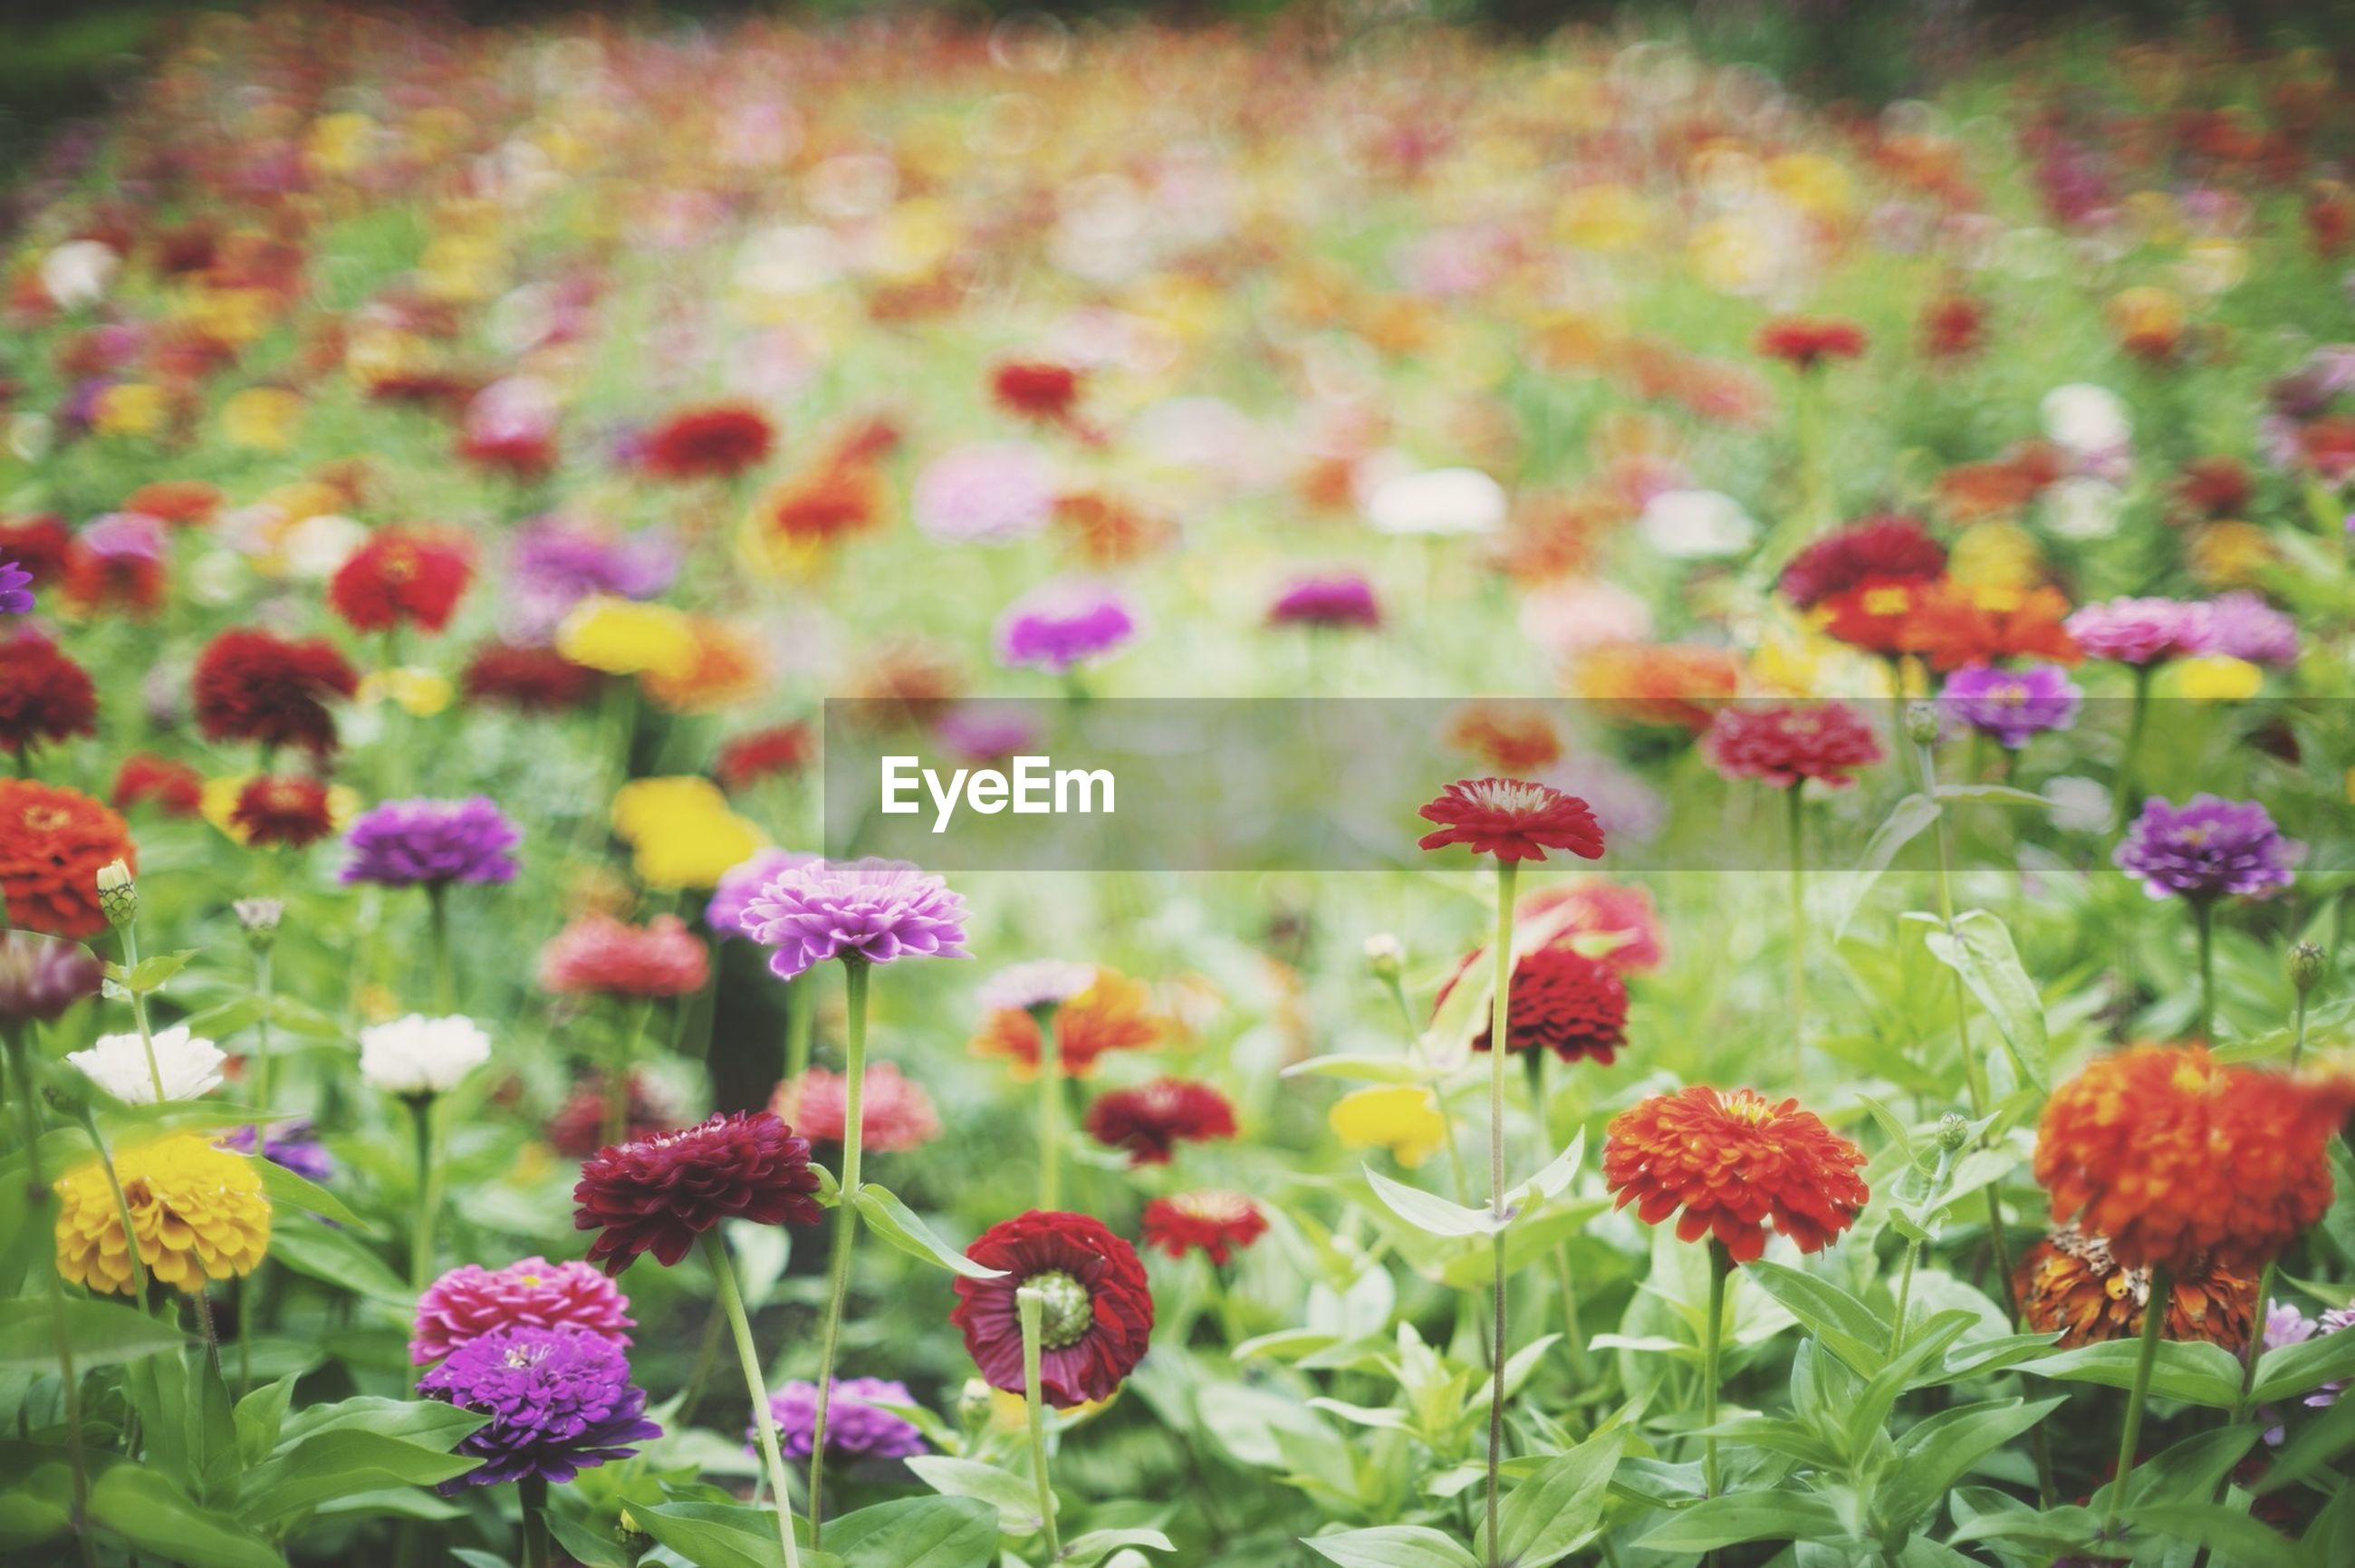 flower, freshness, growth, fragility, beauty in nature, petal, flower head, blooming, plant, field, nature, pink color, abundance, in bloom, tulip, focus on foreground, outdoors, day, close-up, park - man made space